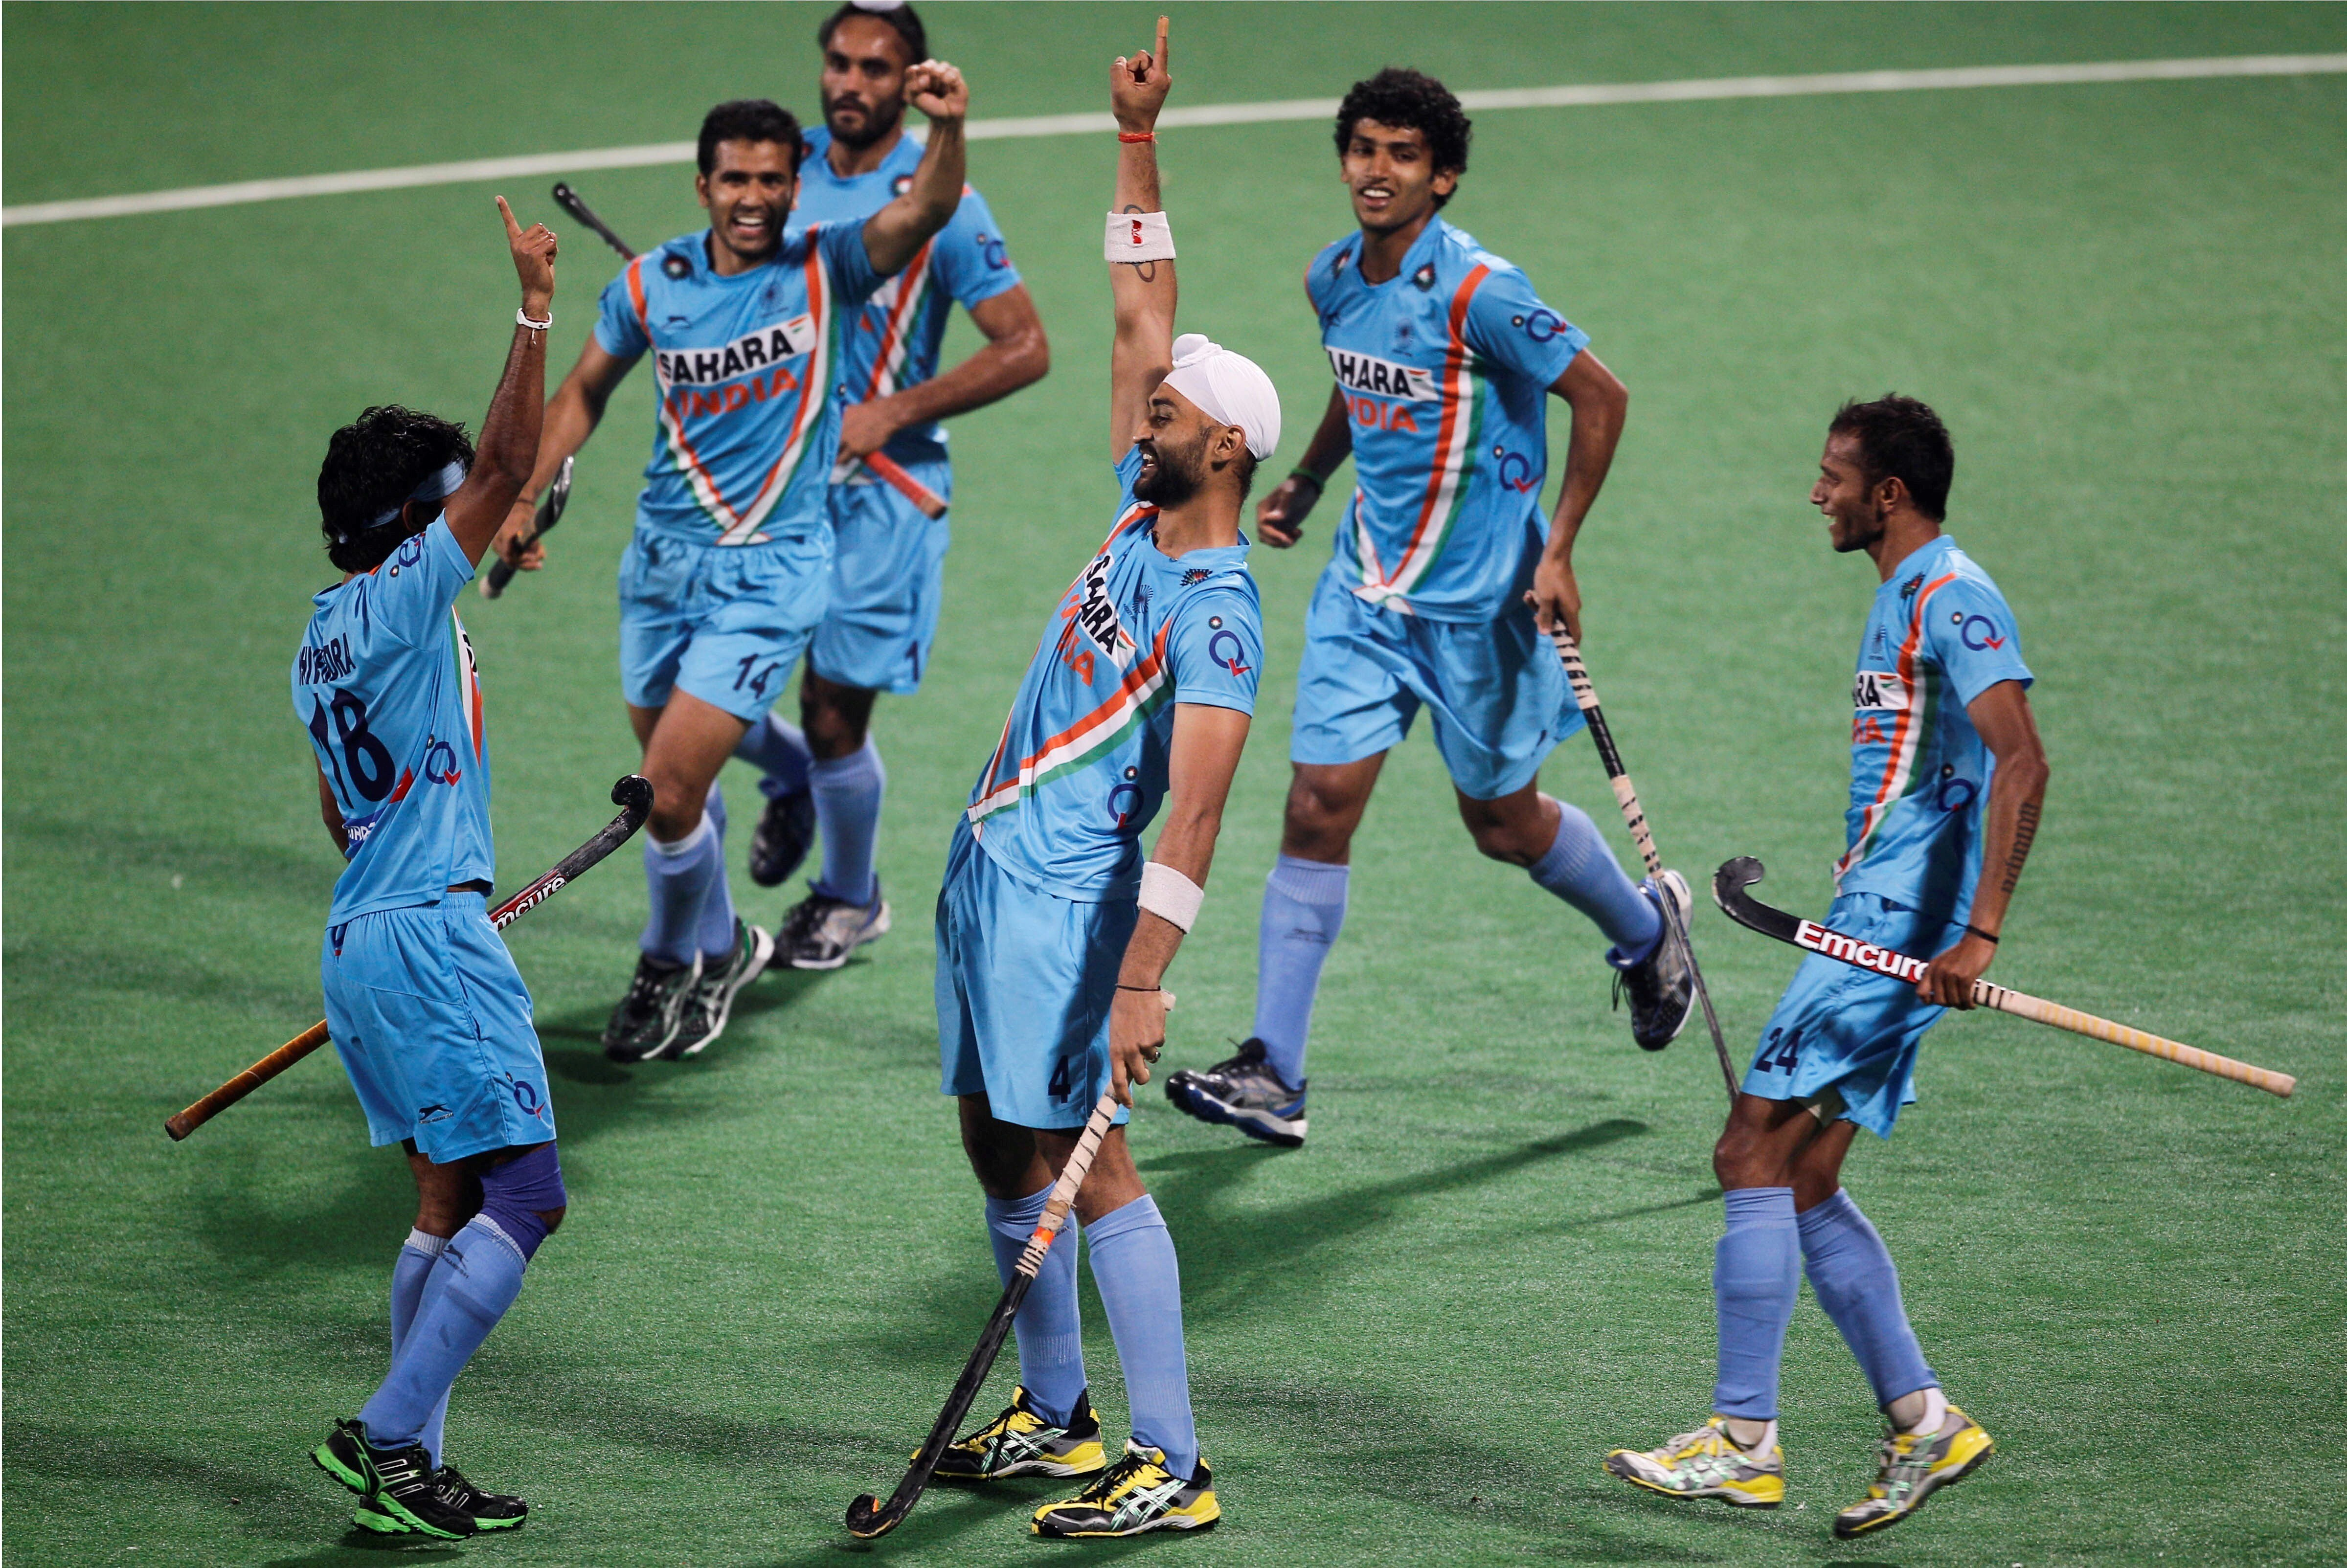 Sports Wallpaper For Walls India: Indian Hocky Player Celebrate After Goal